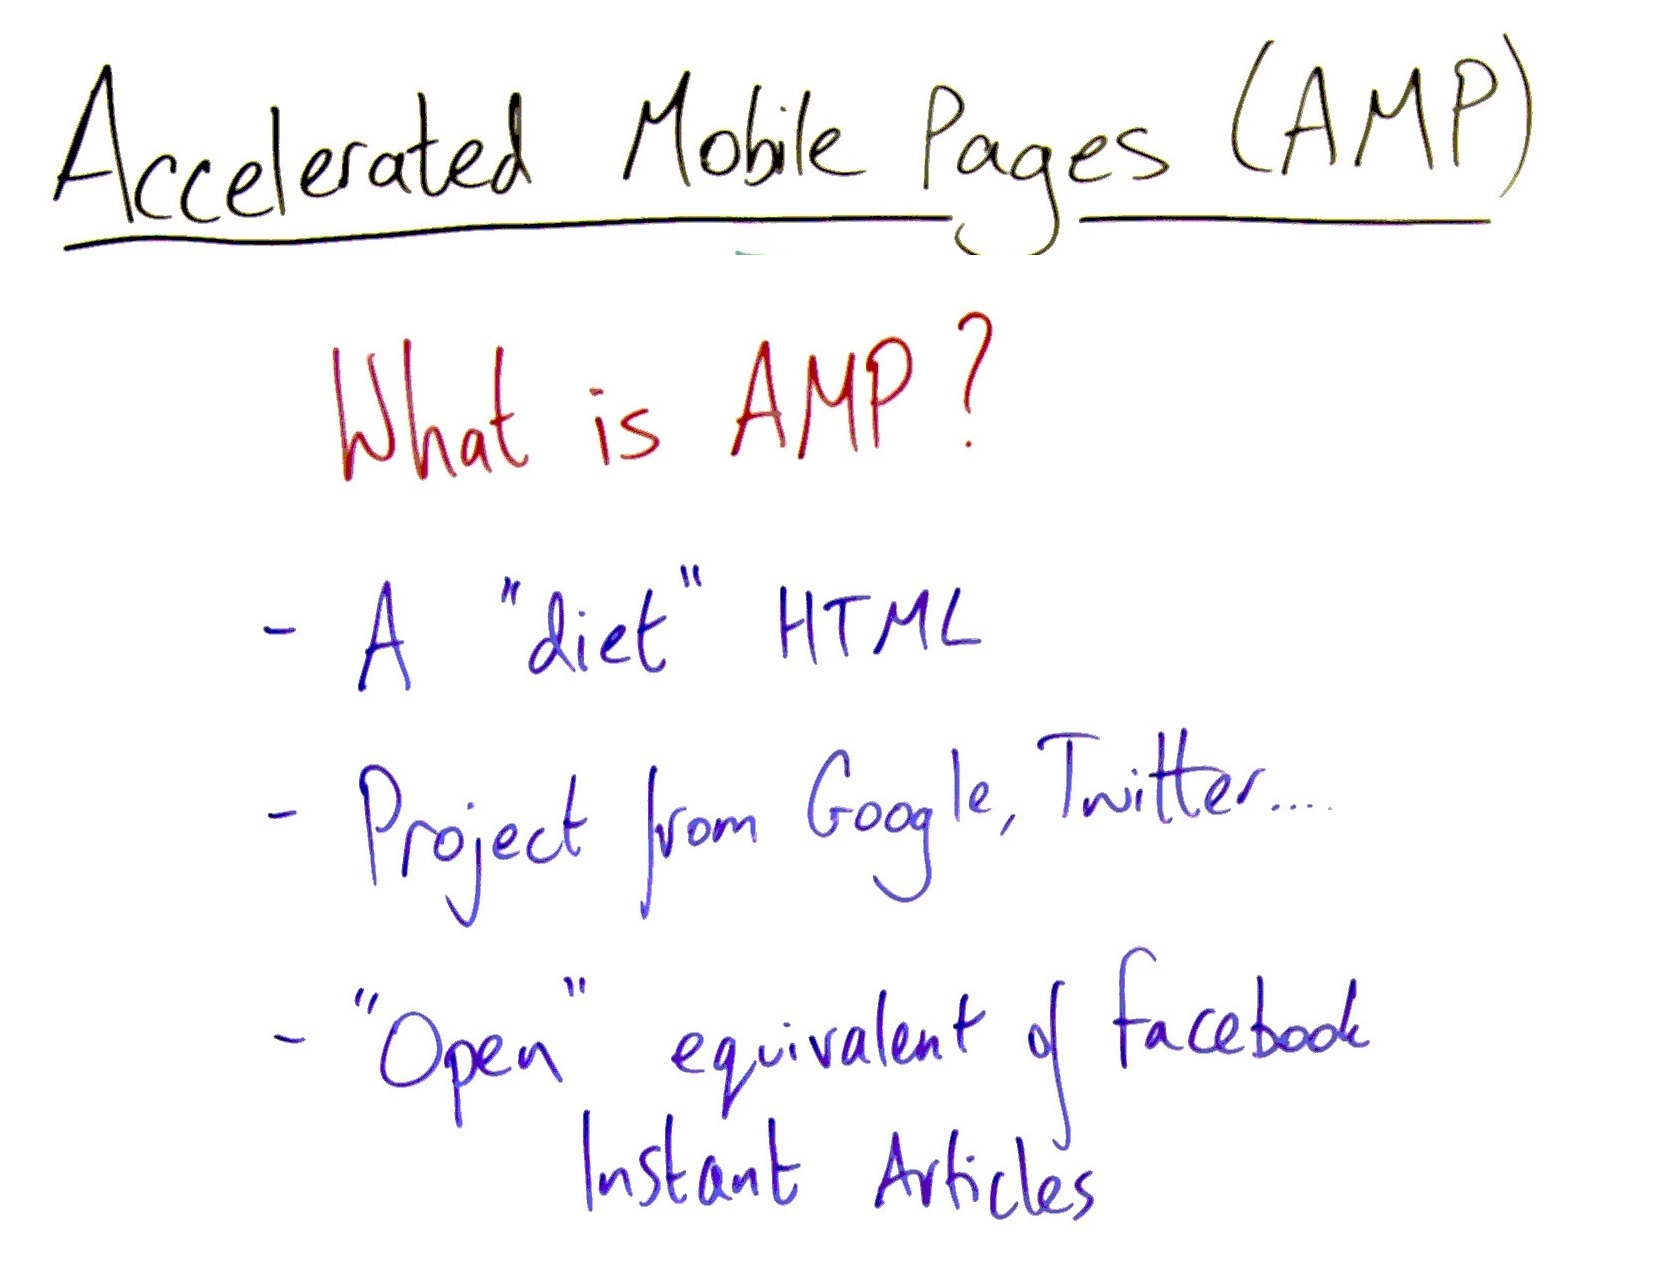 AMP PAGE RANKING BEGINS